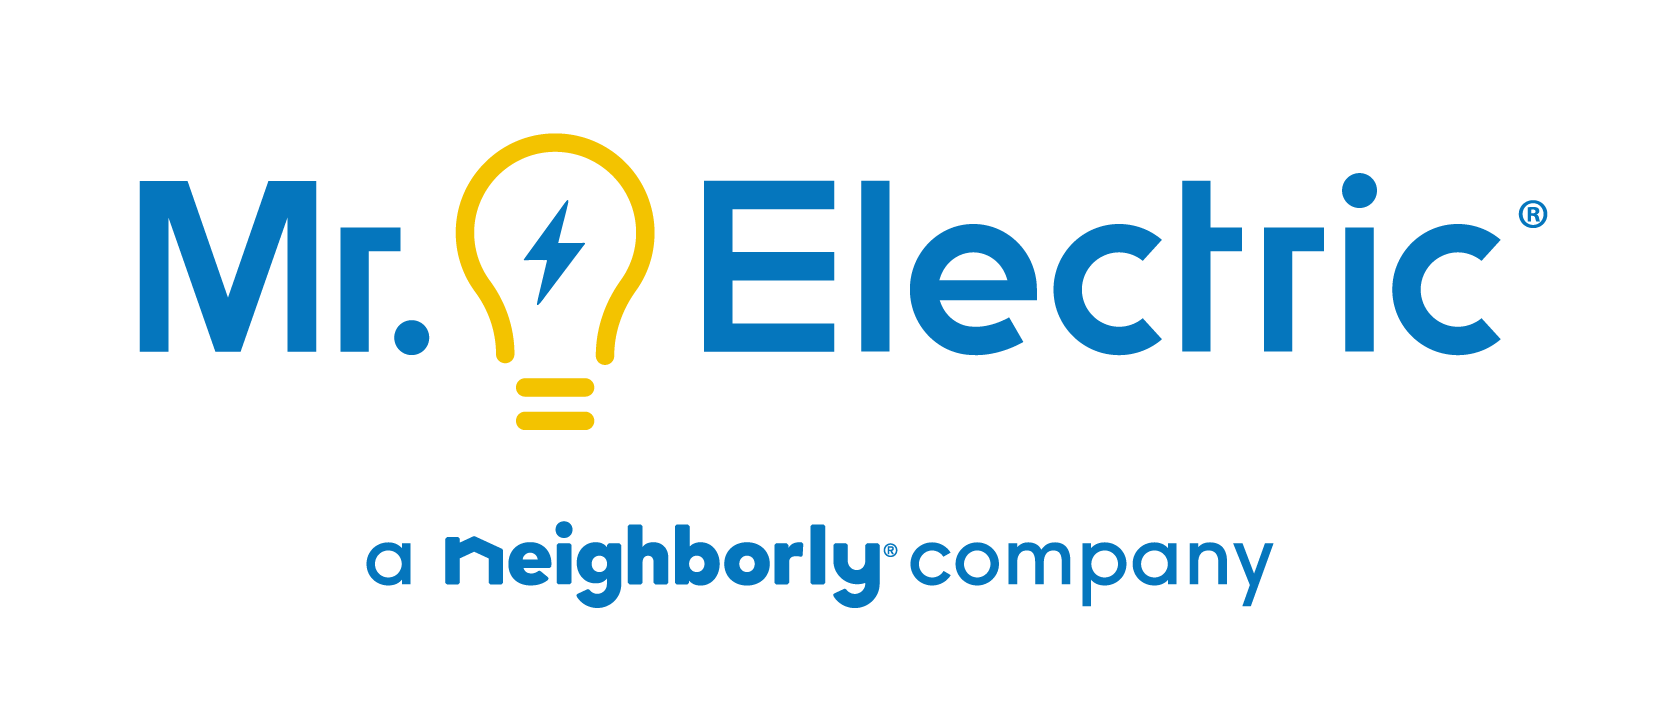 Mr. Electric of Monroe, NY